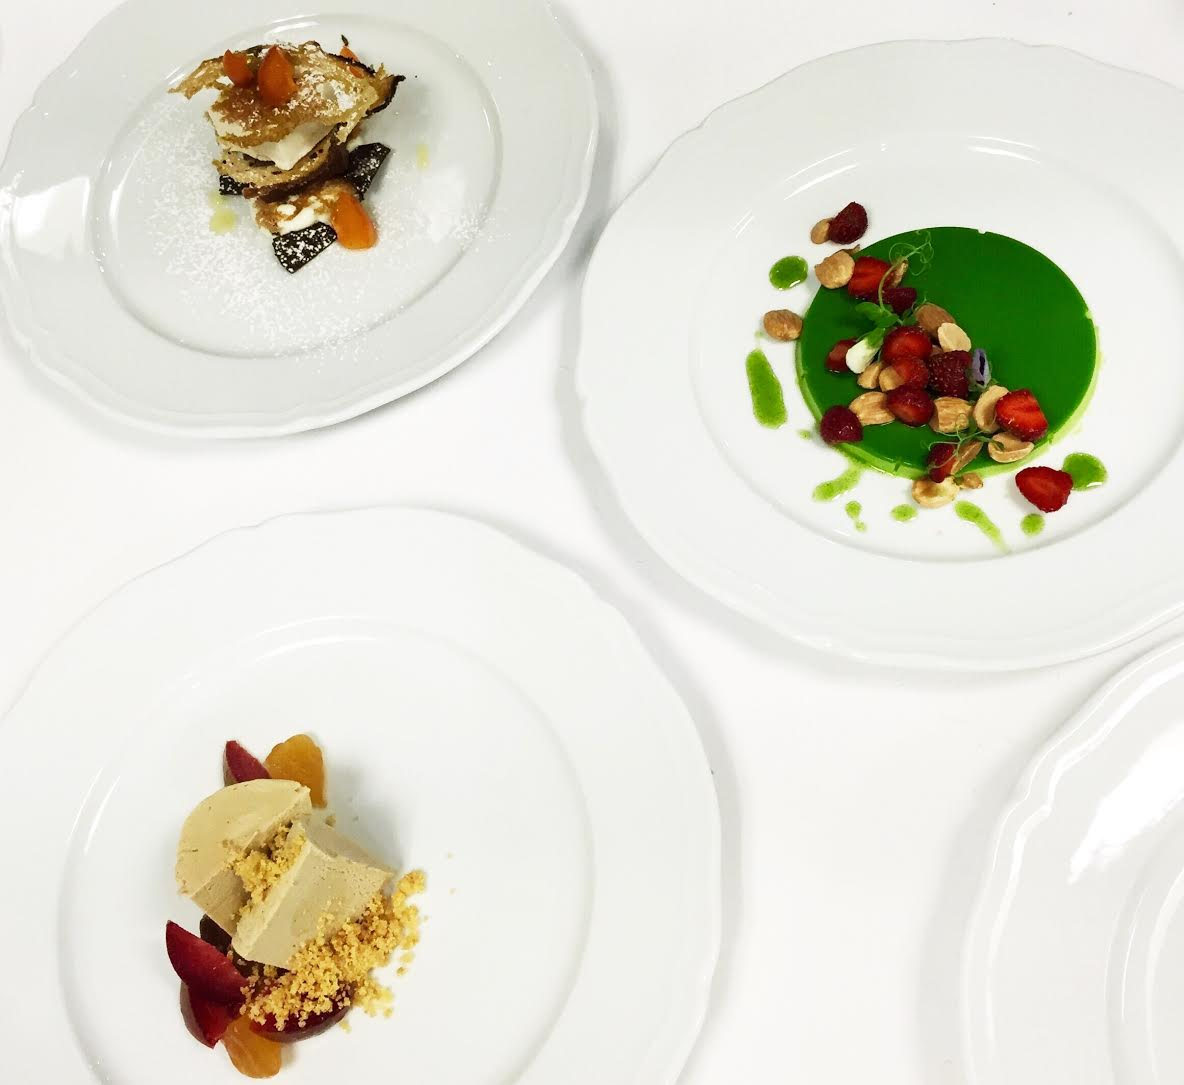 Though taken a month ago in the kitchen by Gina, this photo shows Gina's Cornetto & Cappuccino dessert, a Pea Panna Cotta (now a Corn Panna Cotta for the summer menu), and the Butterscotch Semifreddo.